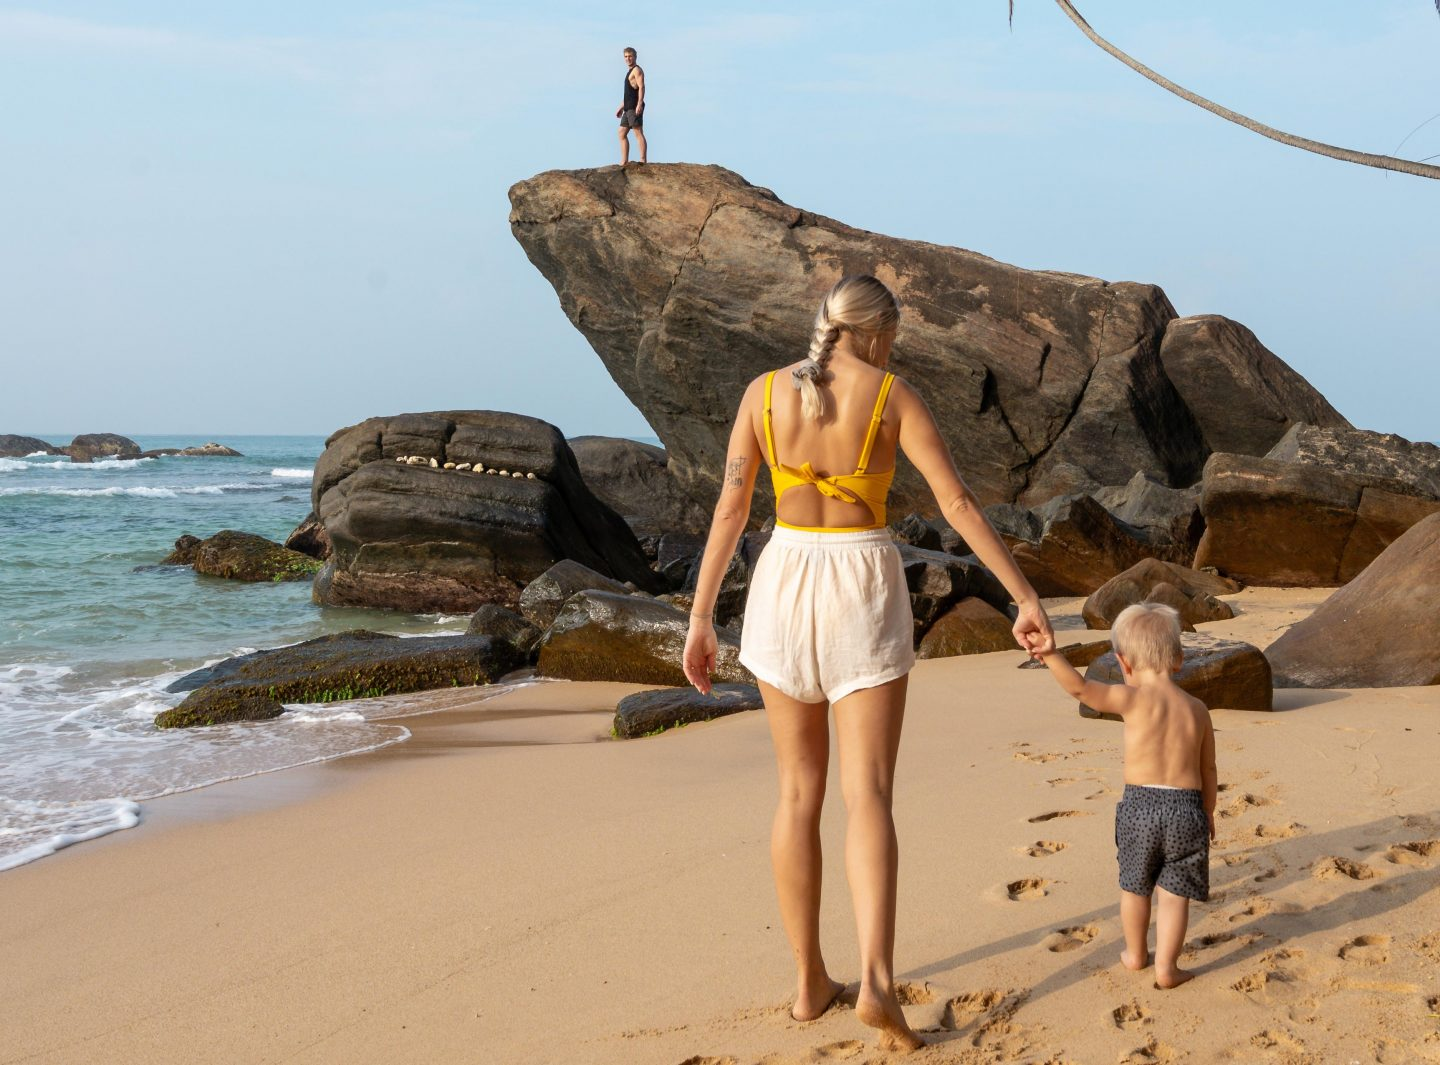 Unawatuna Beach - Traveling Sri Lanka with a toddler